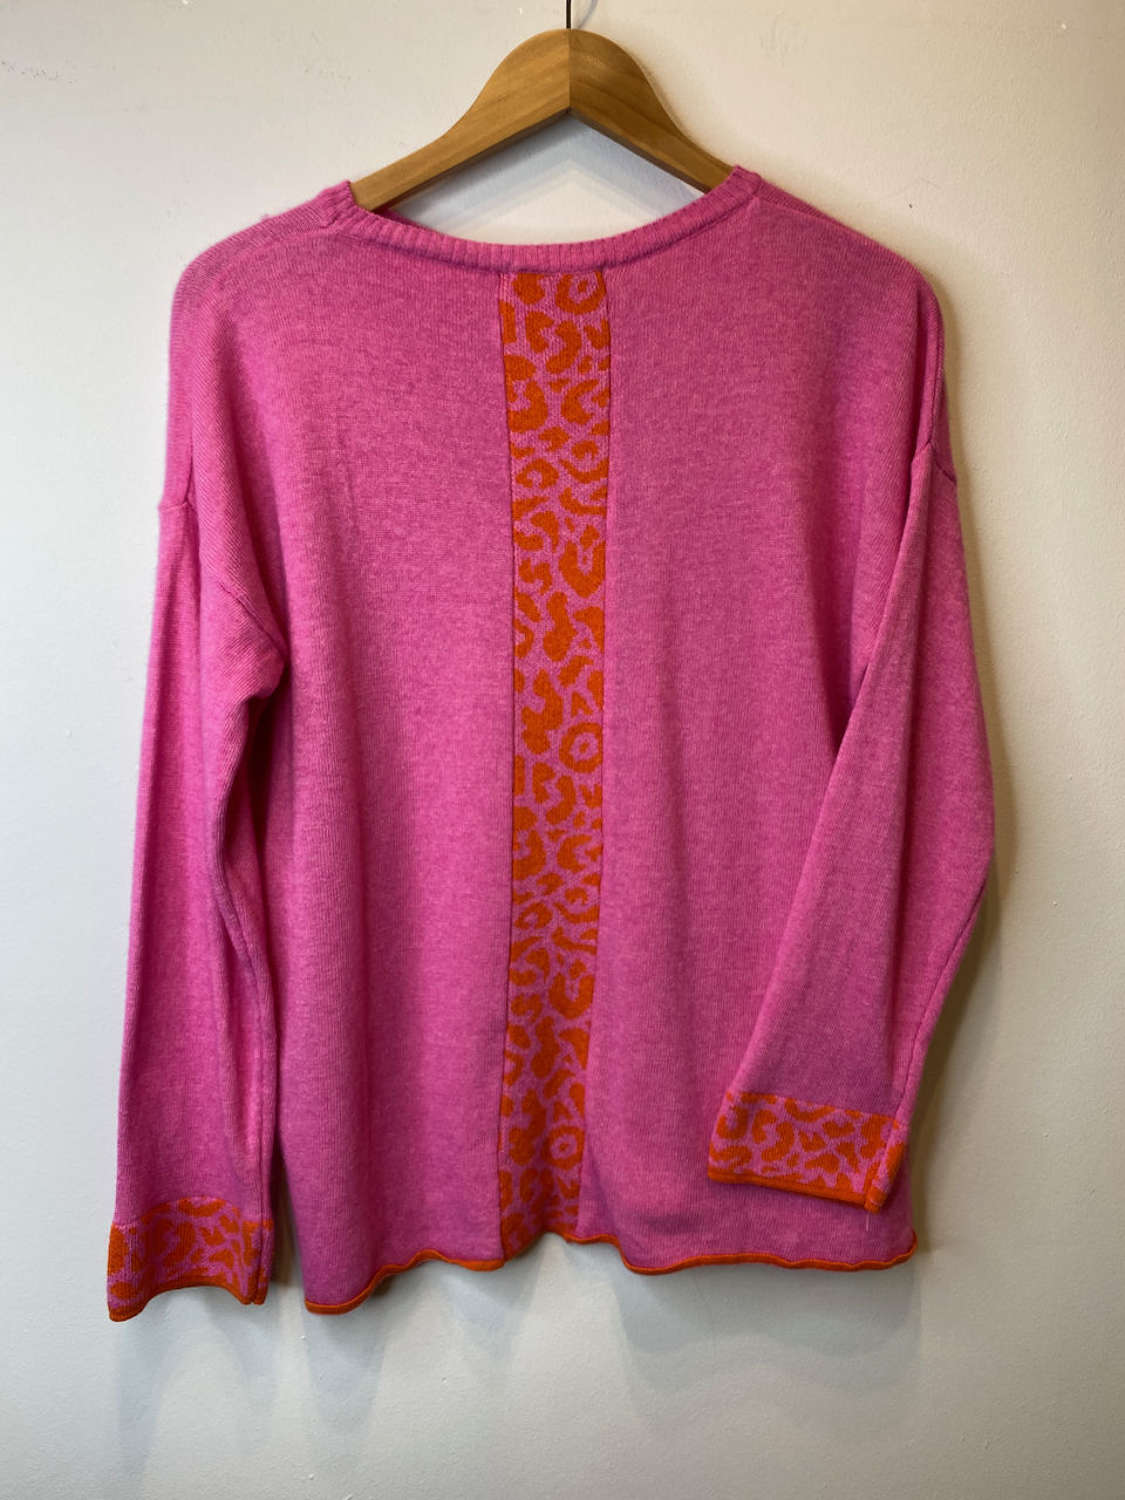 50% Cashmere 40% Wool one size jumper